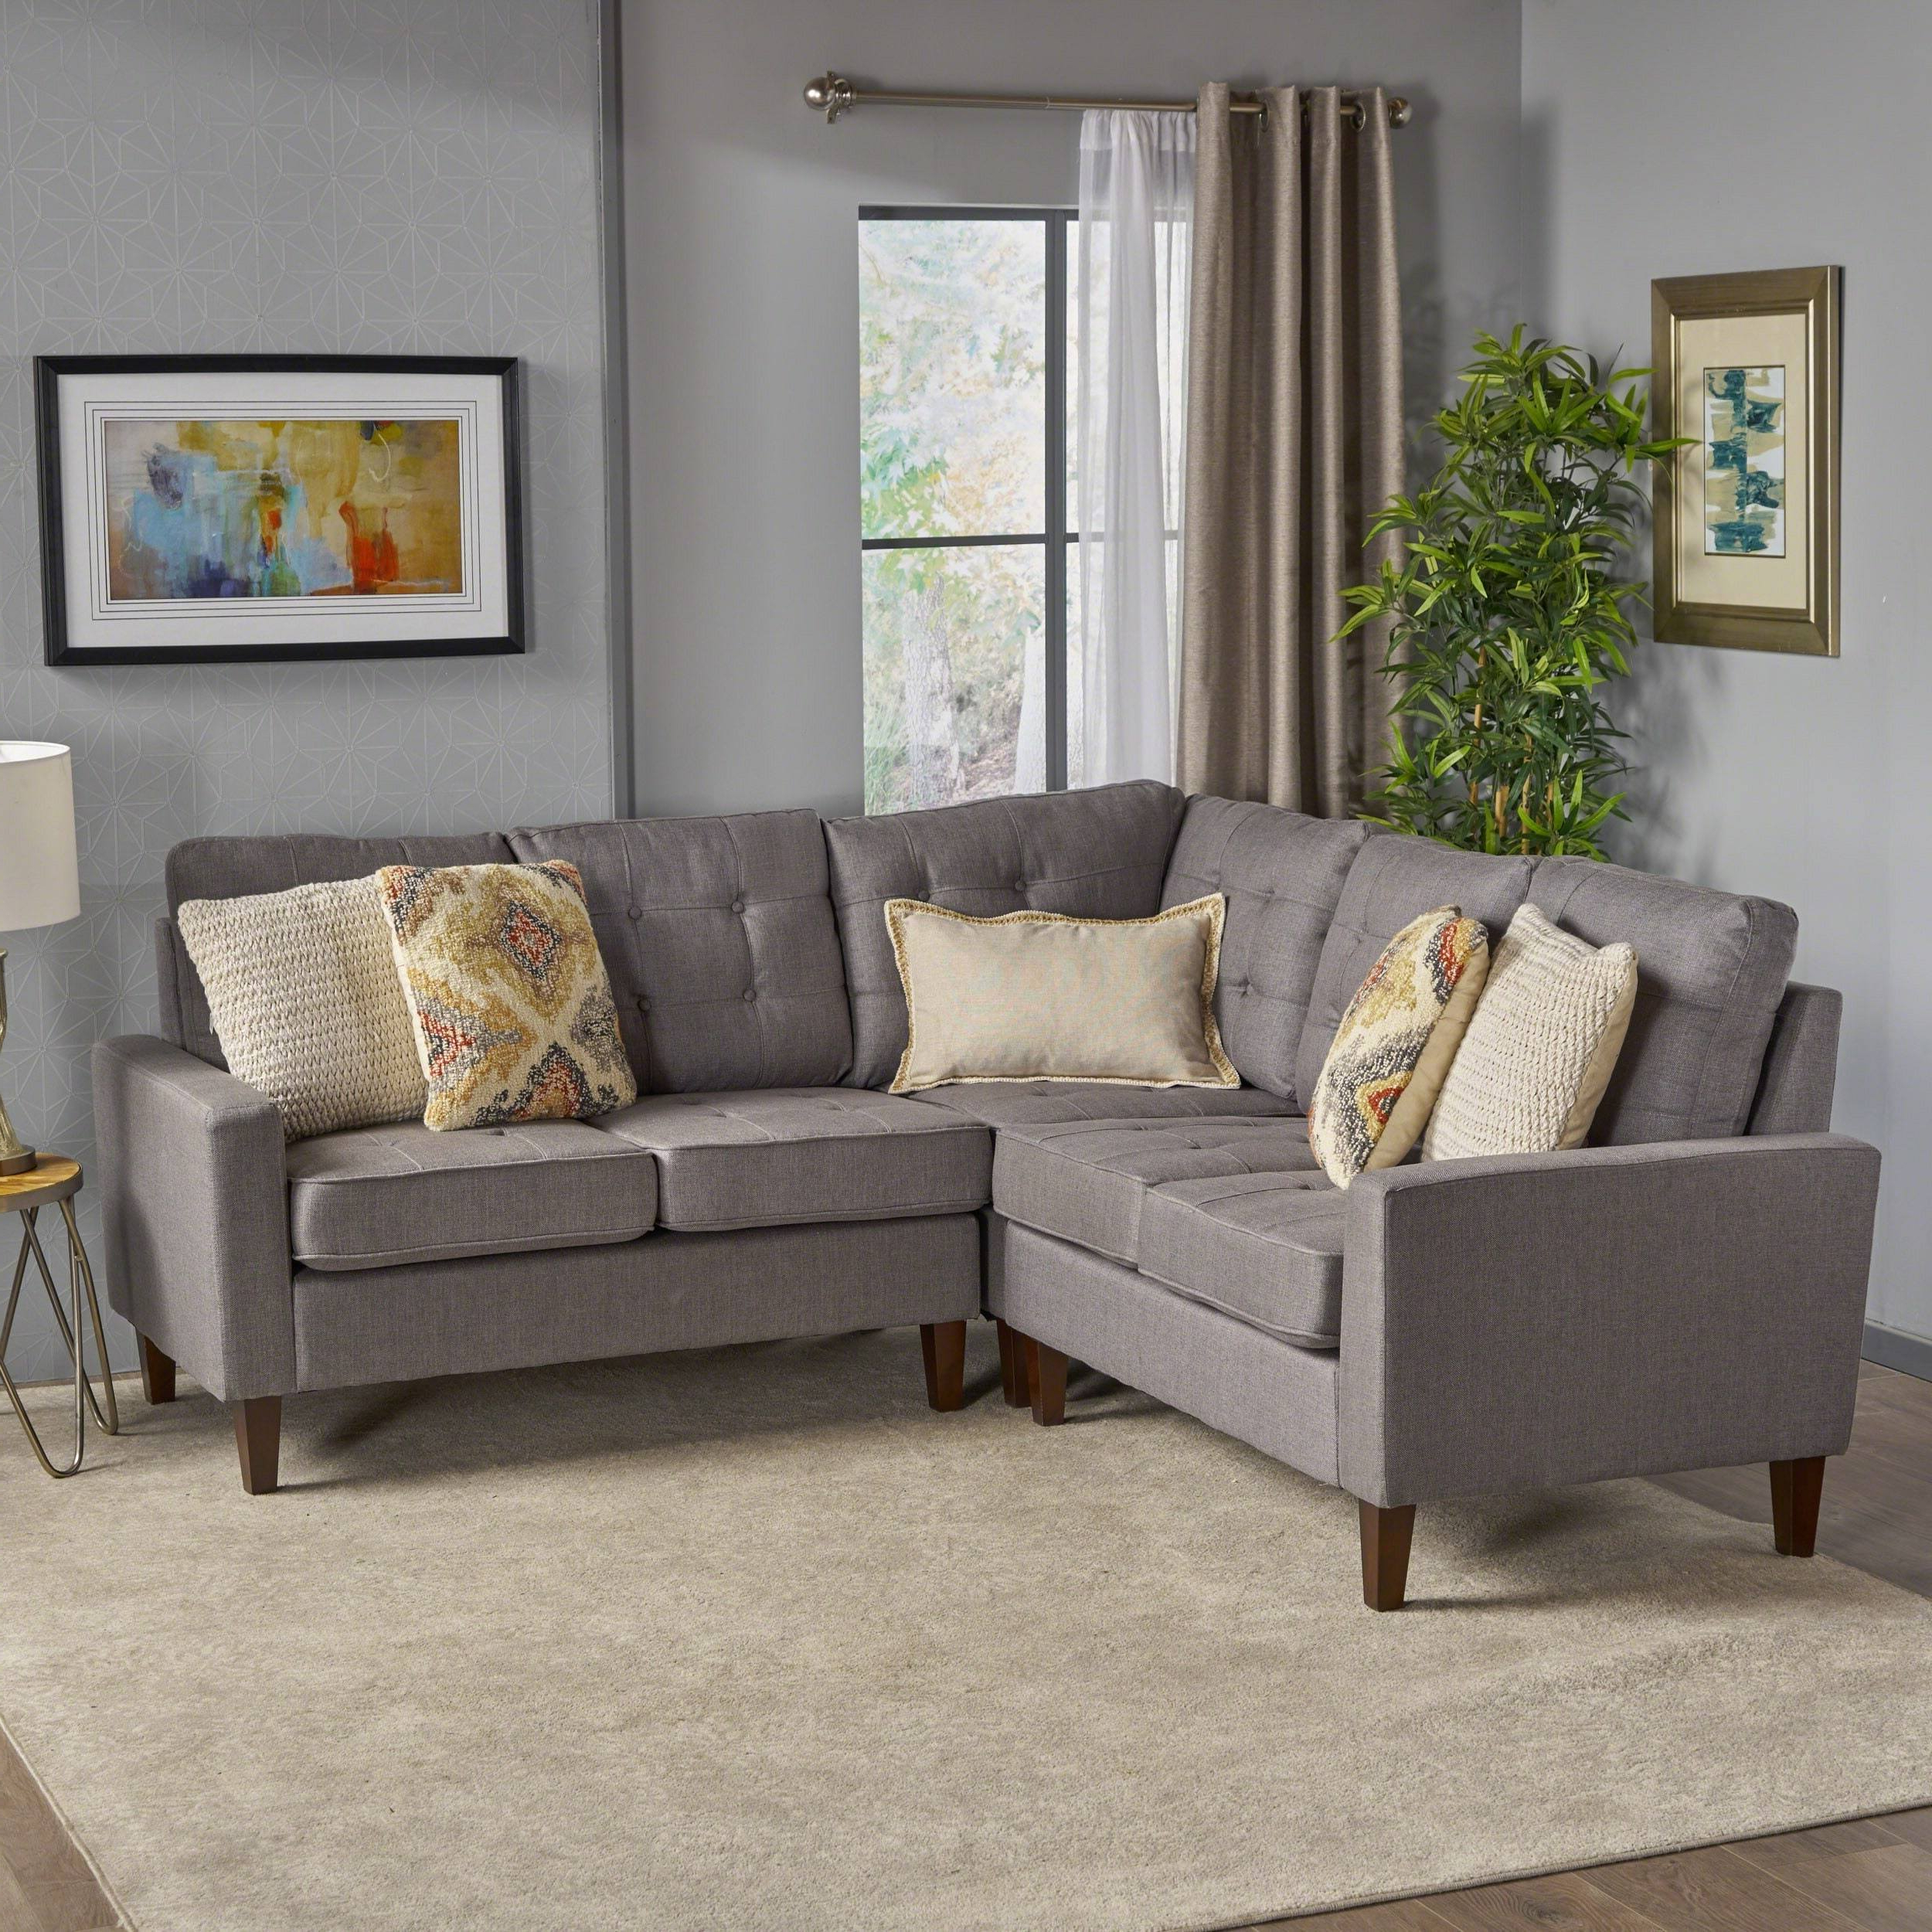 Popular 3 Piece Sectional Sofa (View 16 of 20)